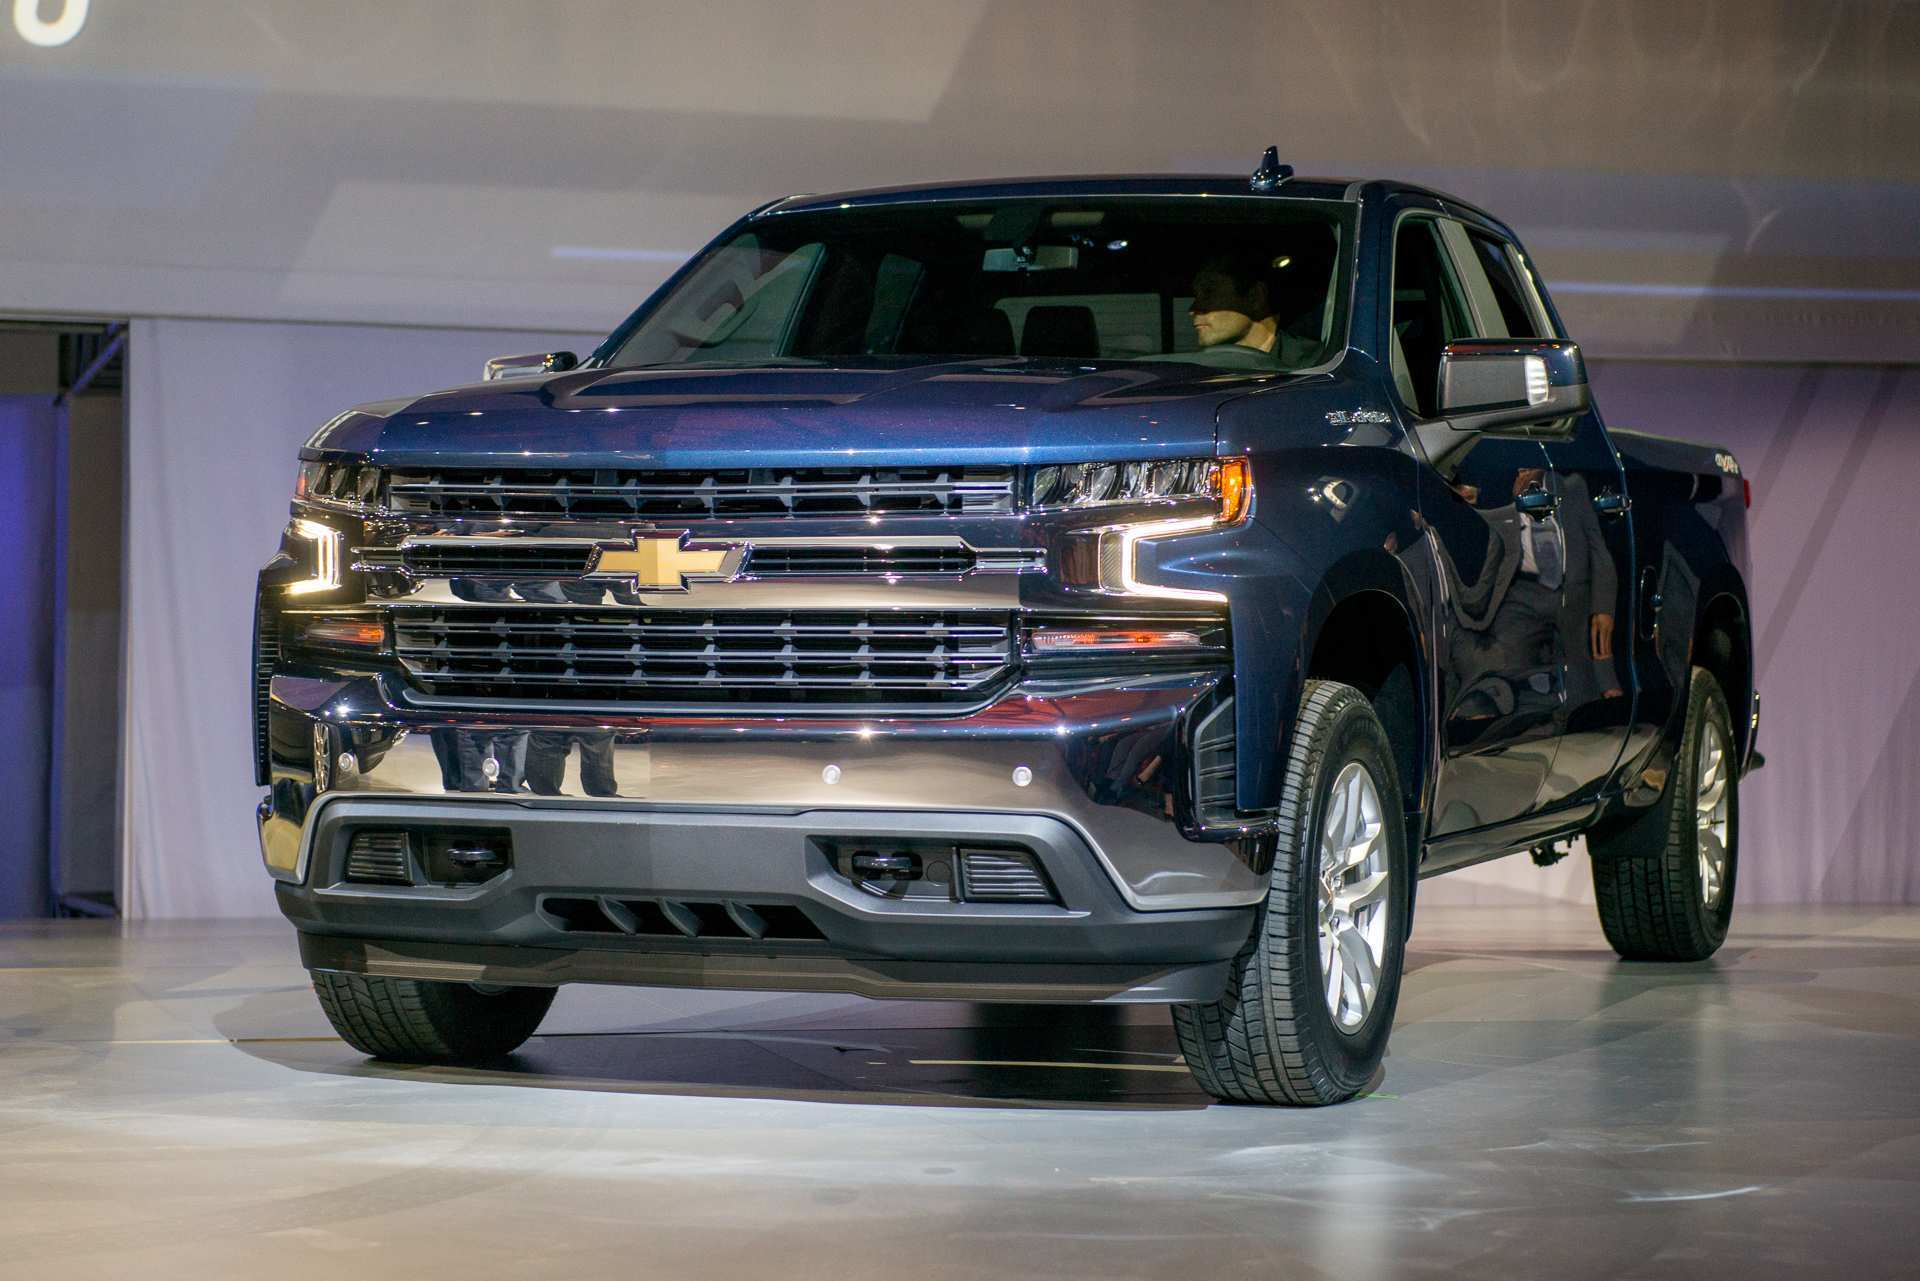 44 New 2019 Chevrolet Hd Trucks Release by 2019 Chevrolet Hd Trucks